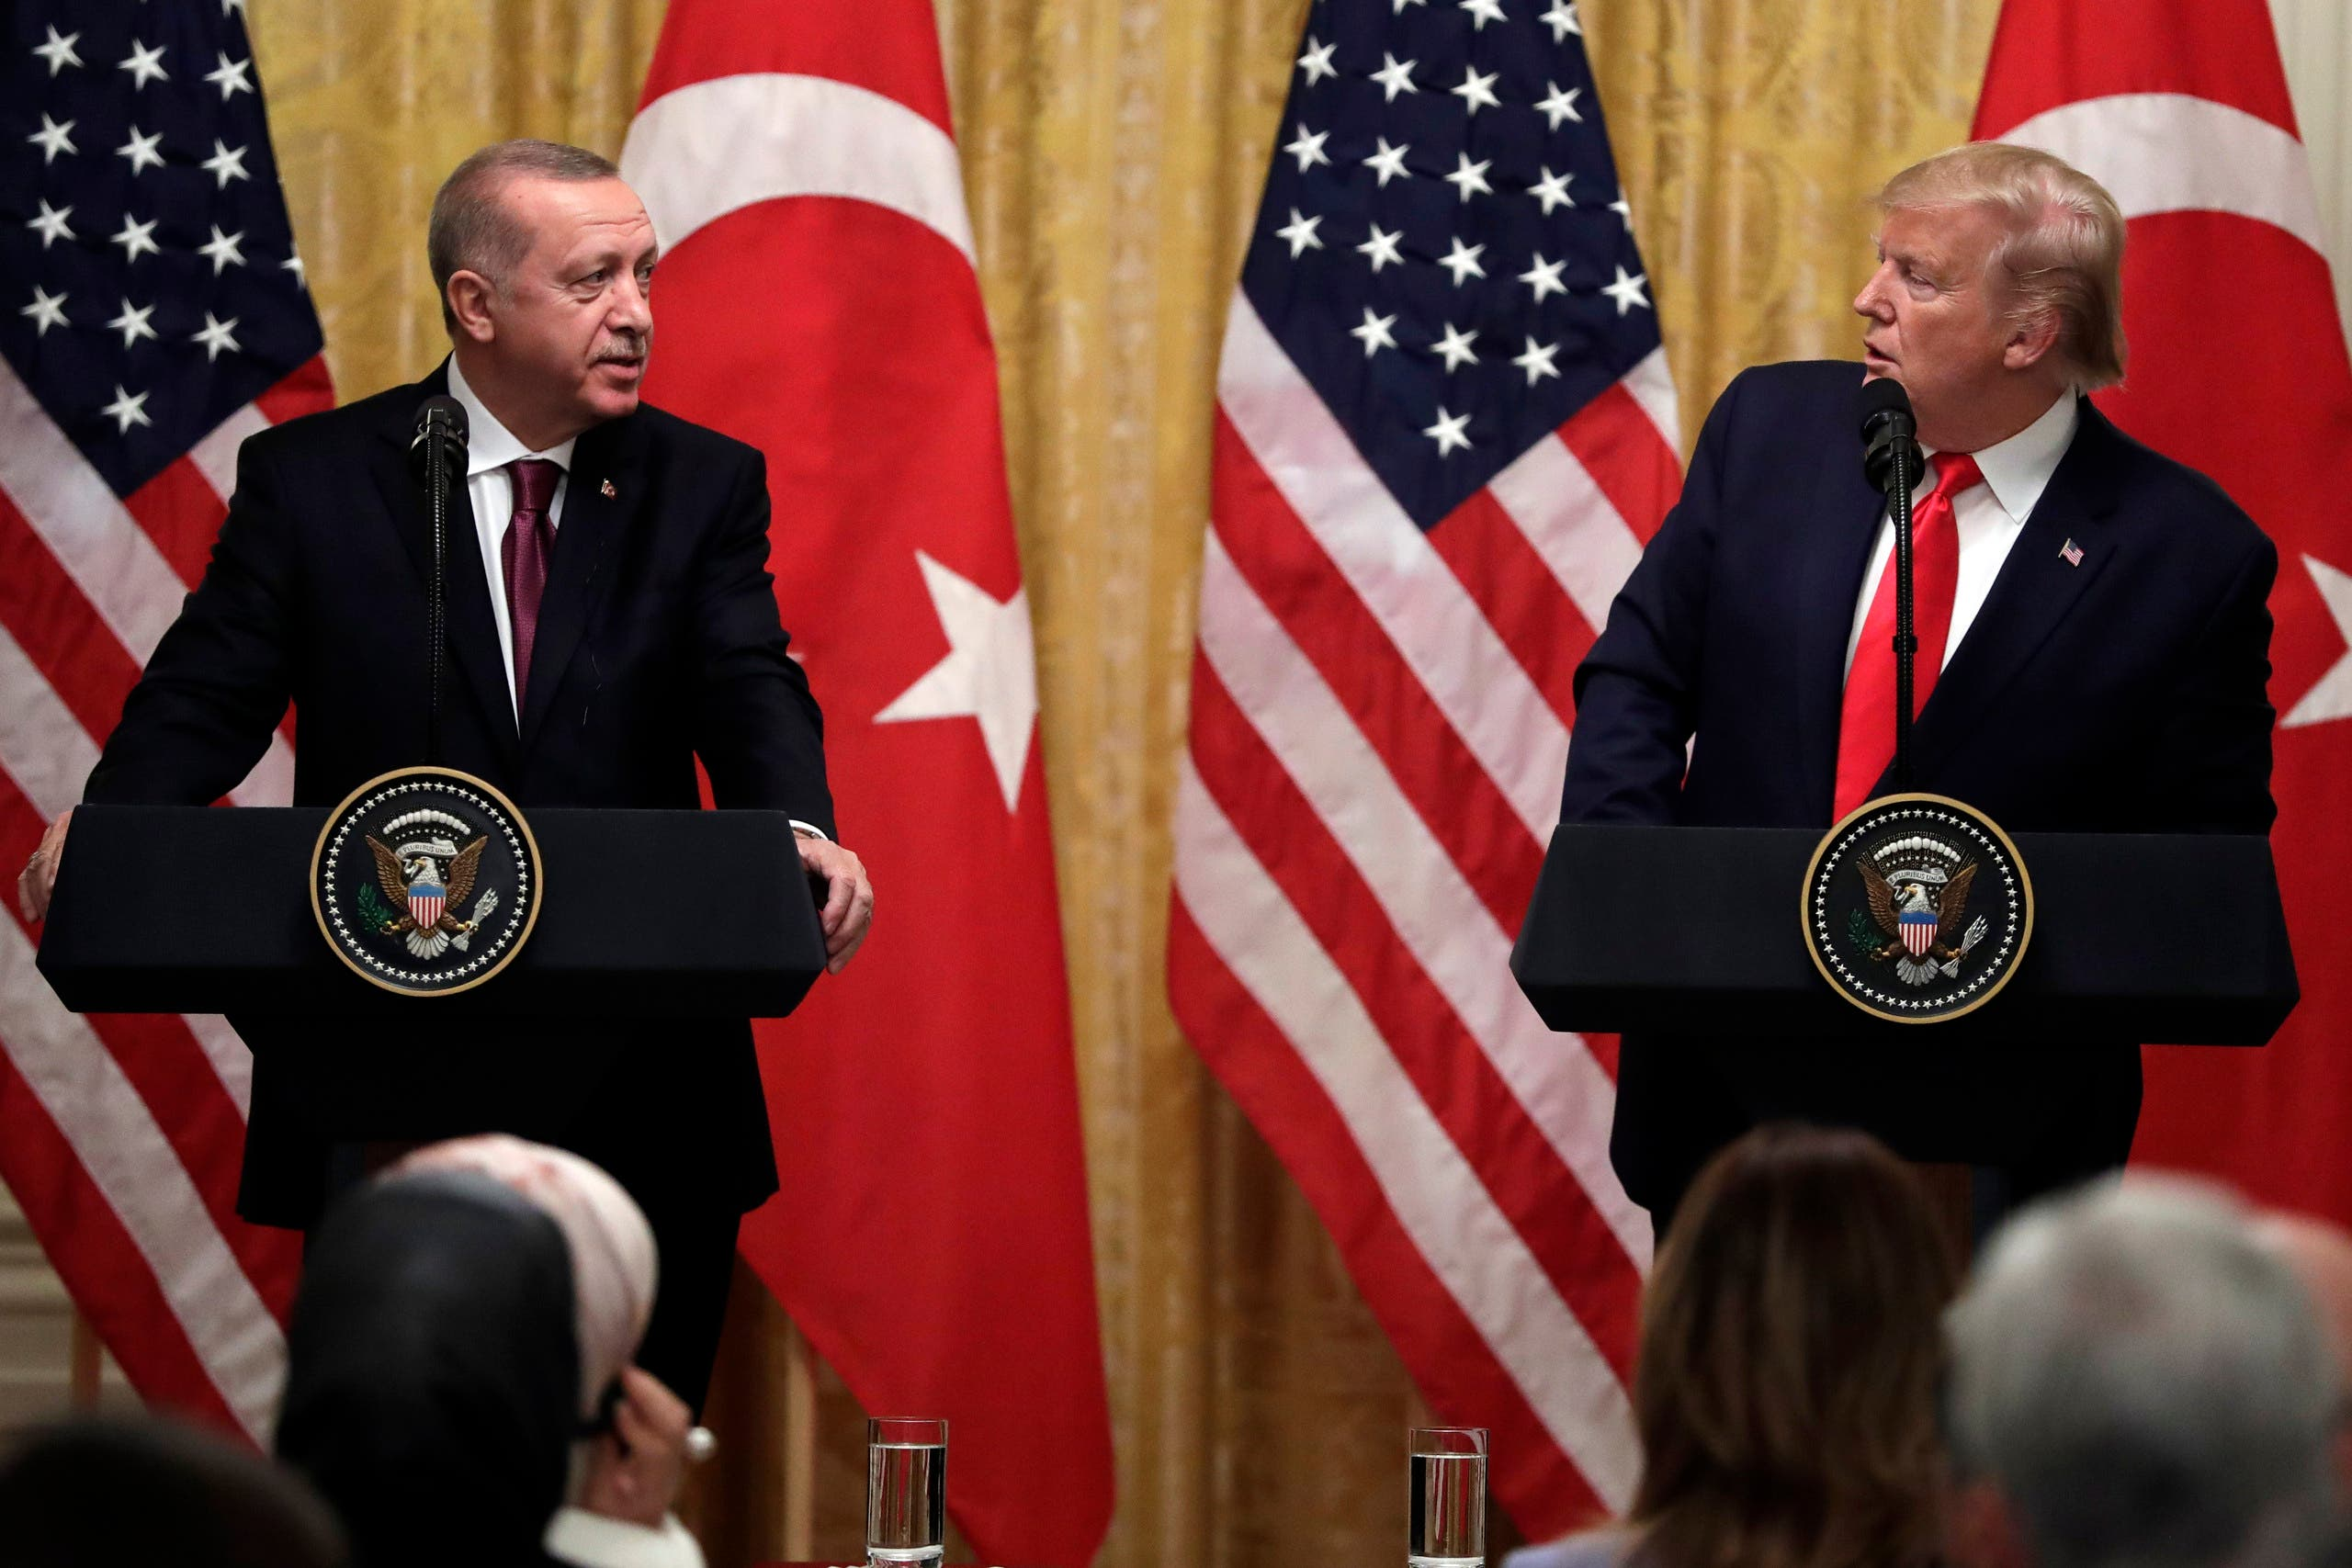 President Donald Trump speaks during a news conference with Turkish President Recep Tayyip Erdogan at the White House on Nov. 13, 2019, in Washington. (AP)